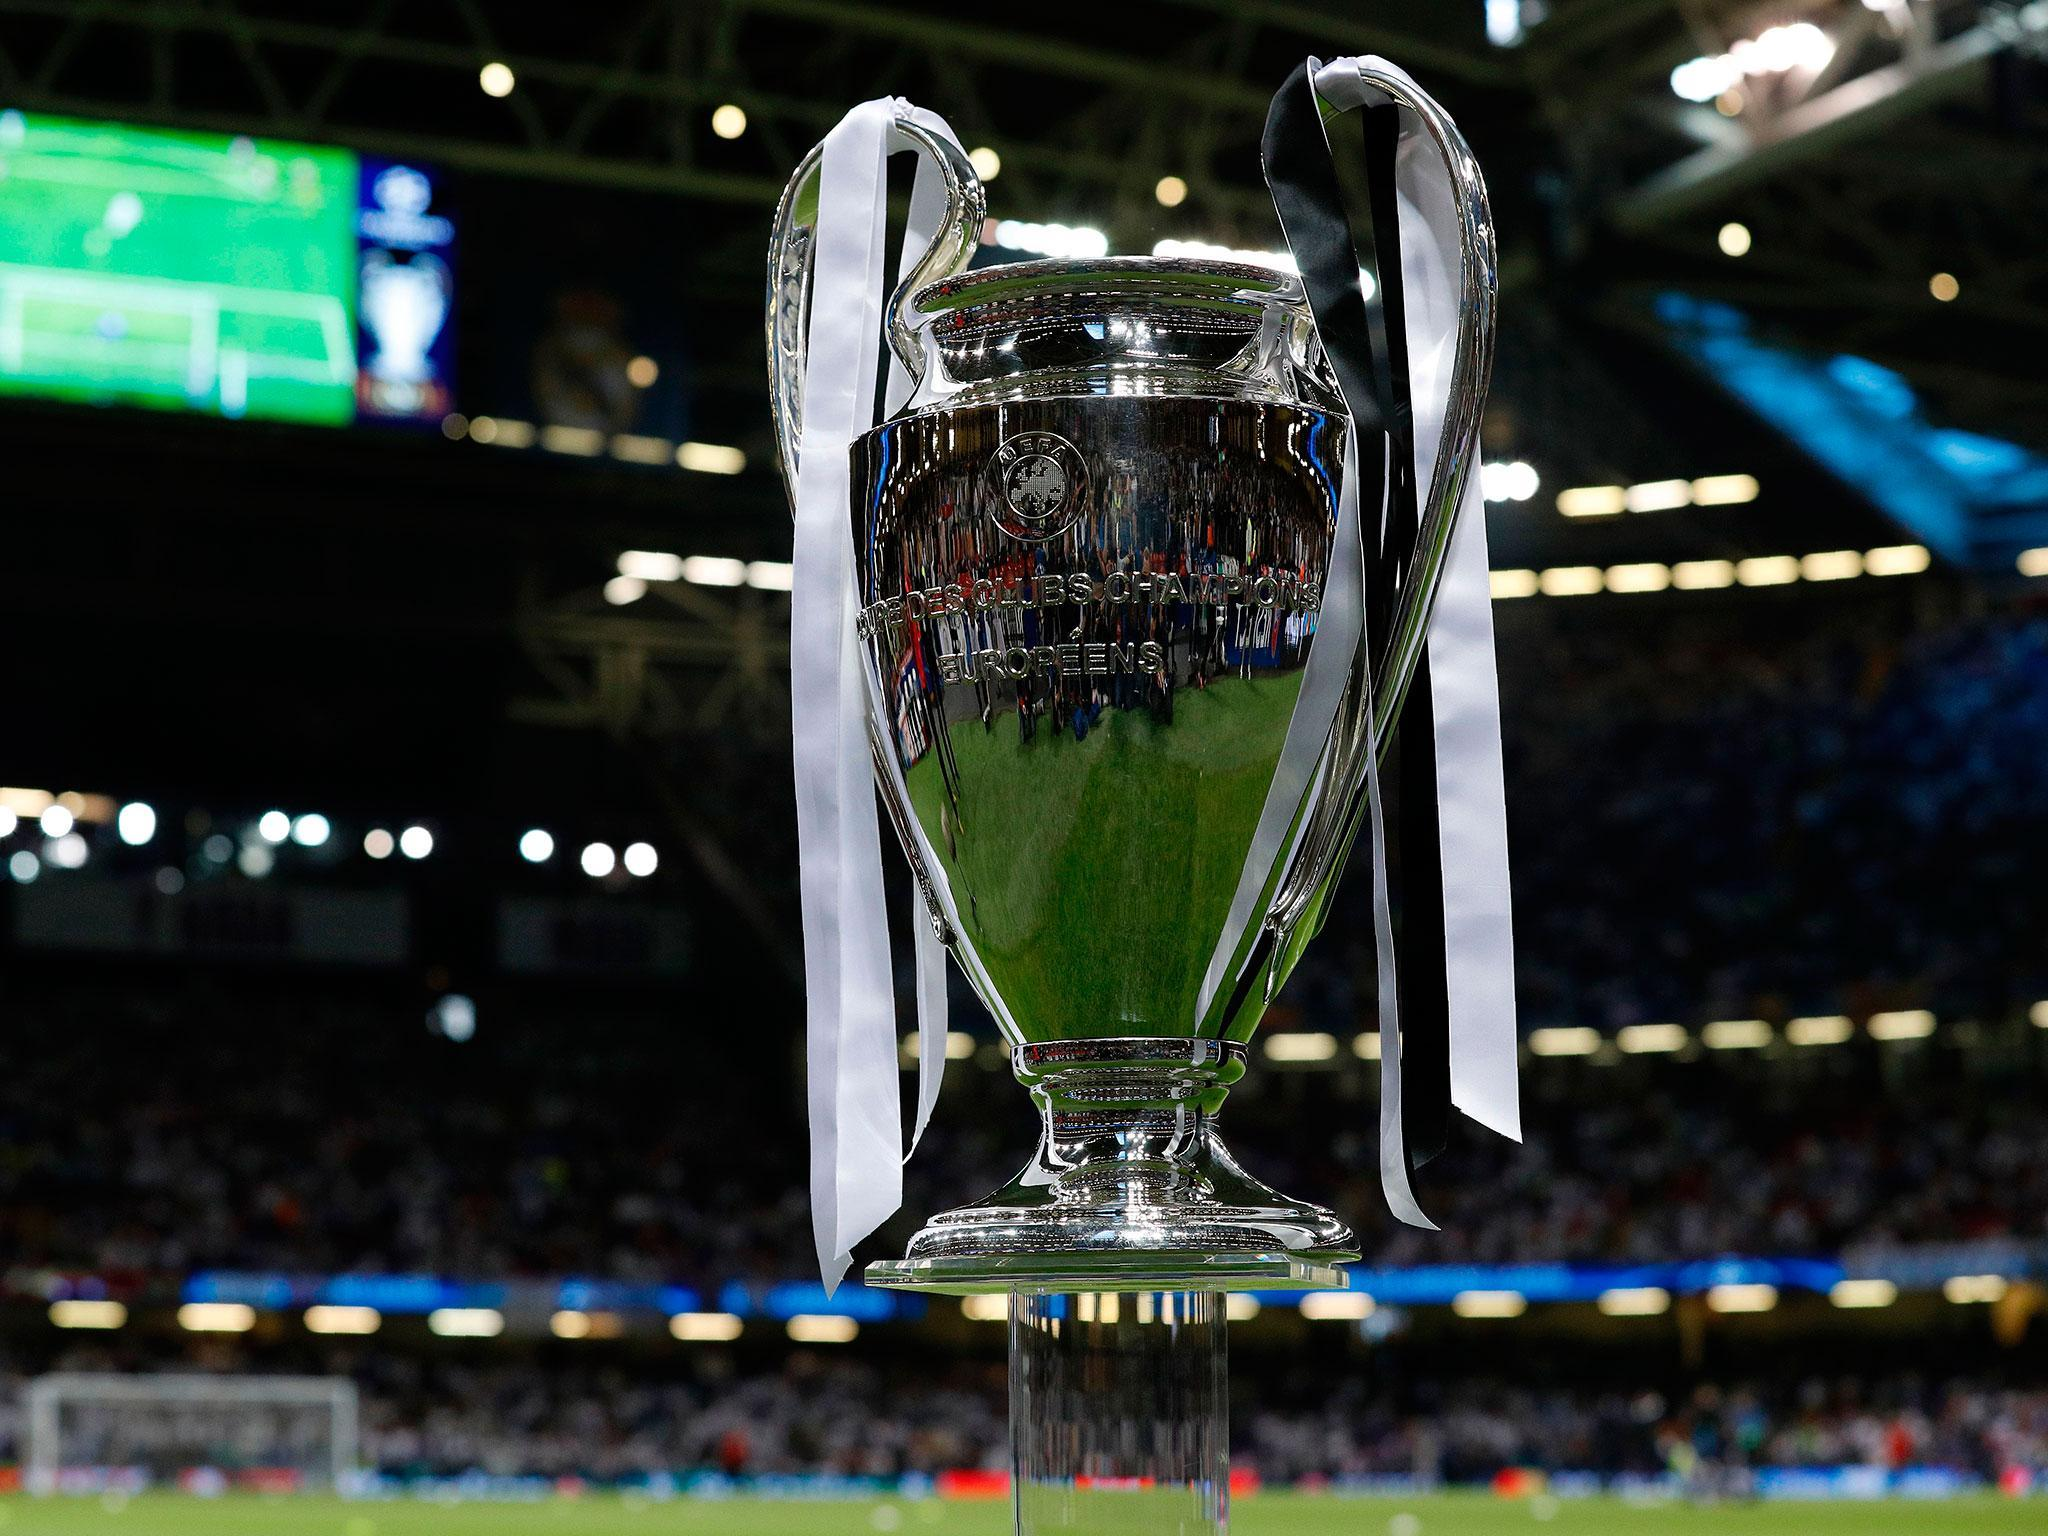 UEFA Champions League explained